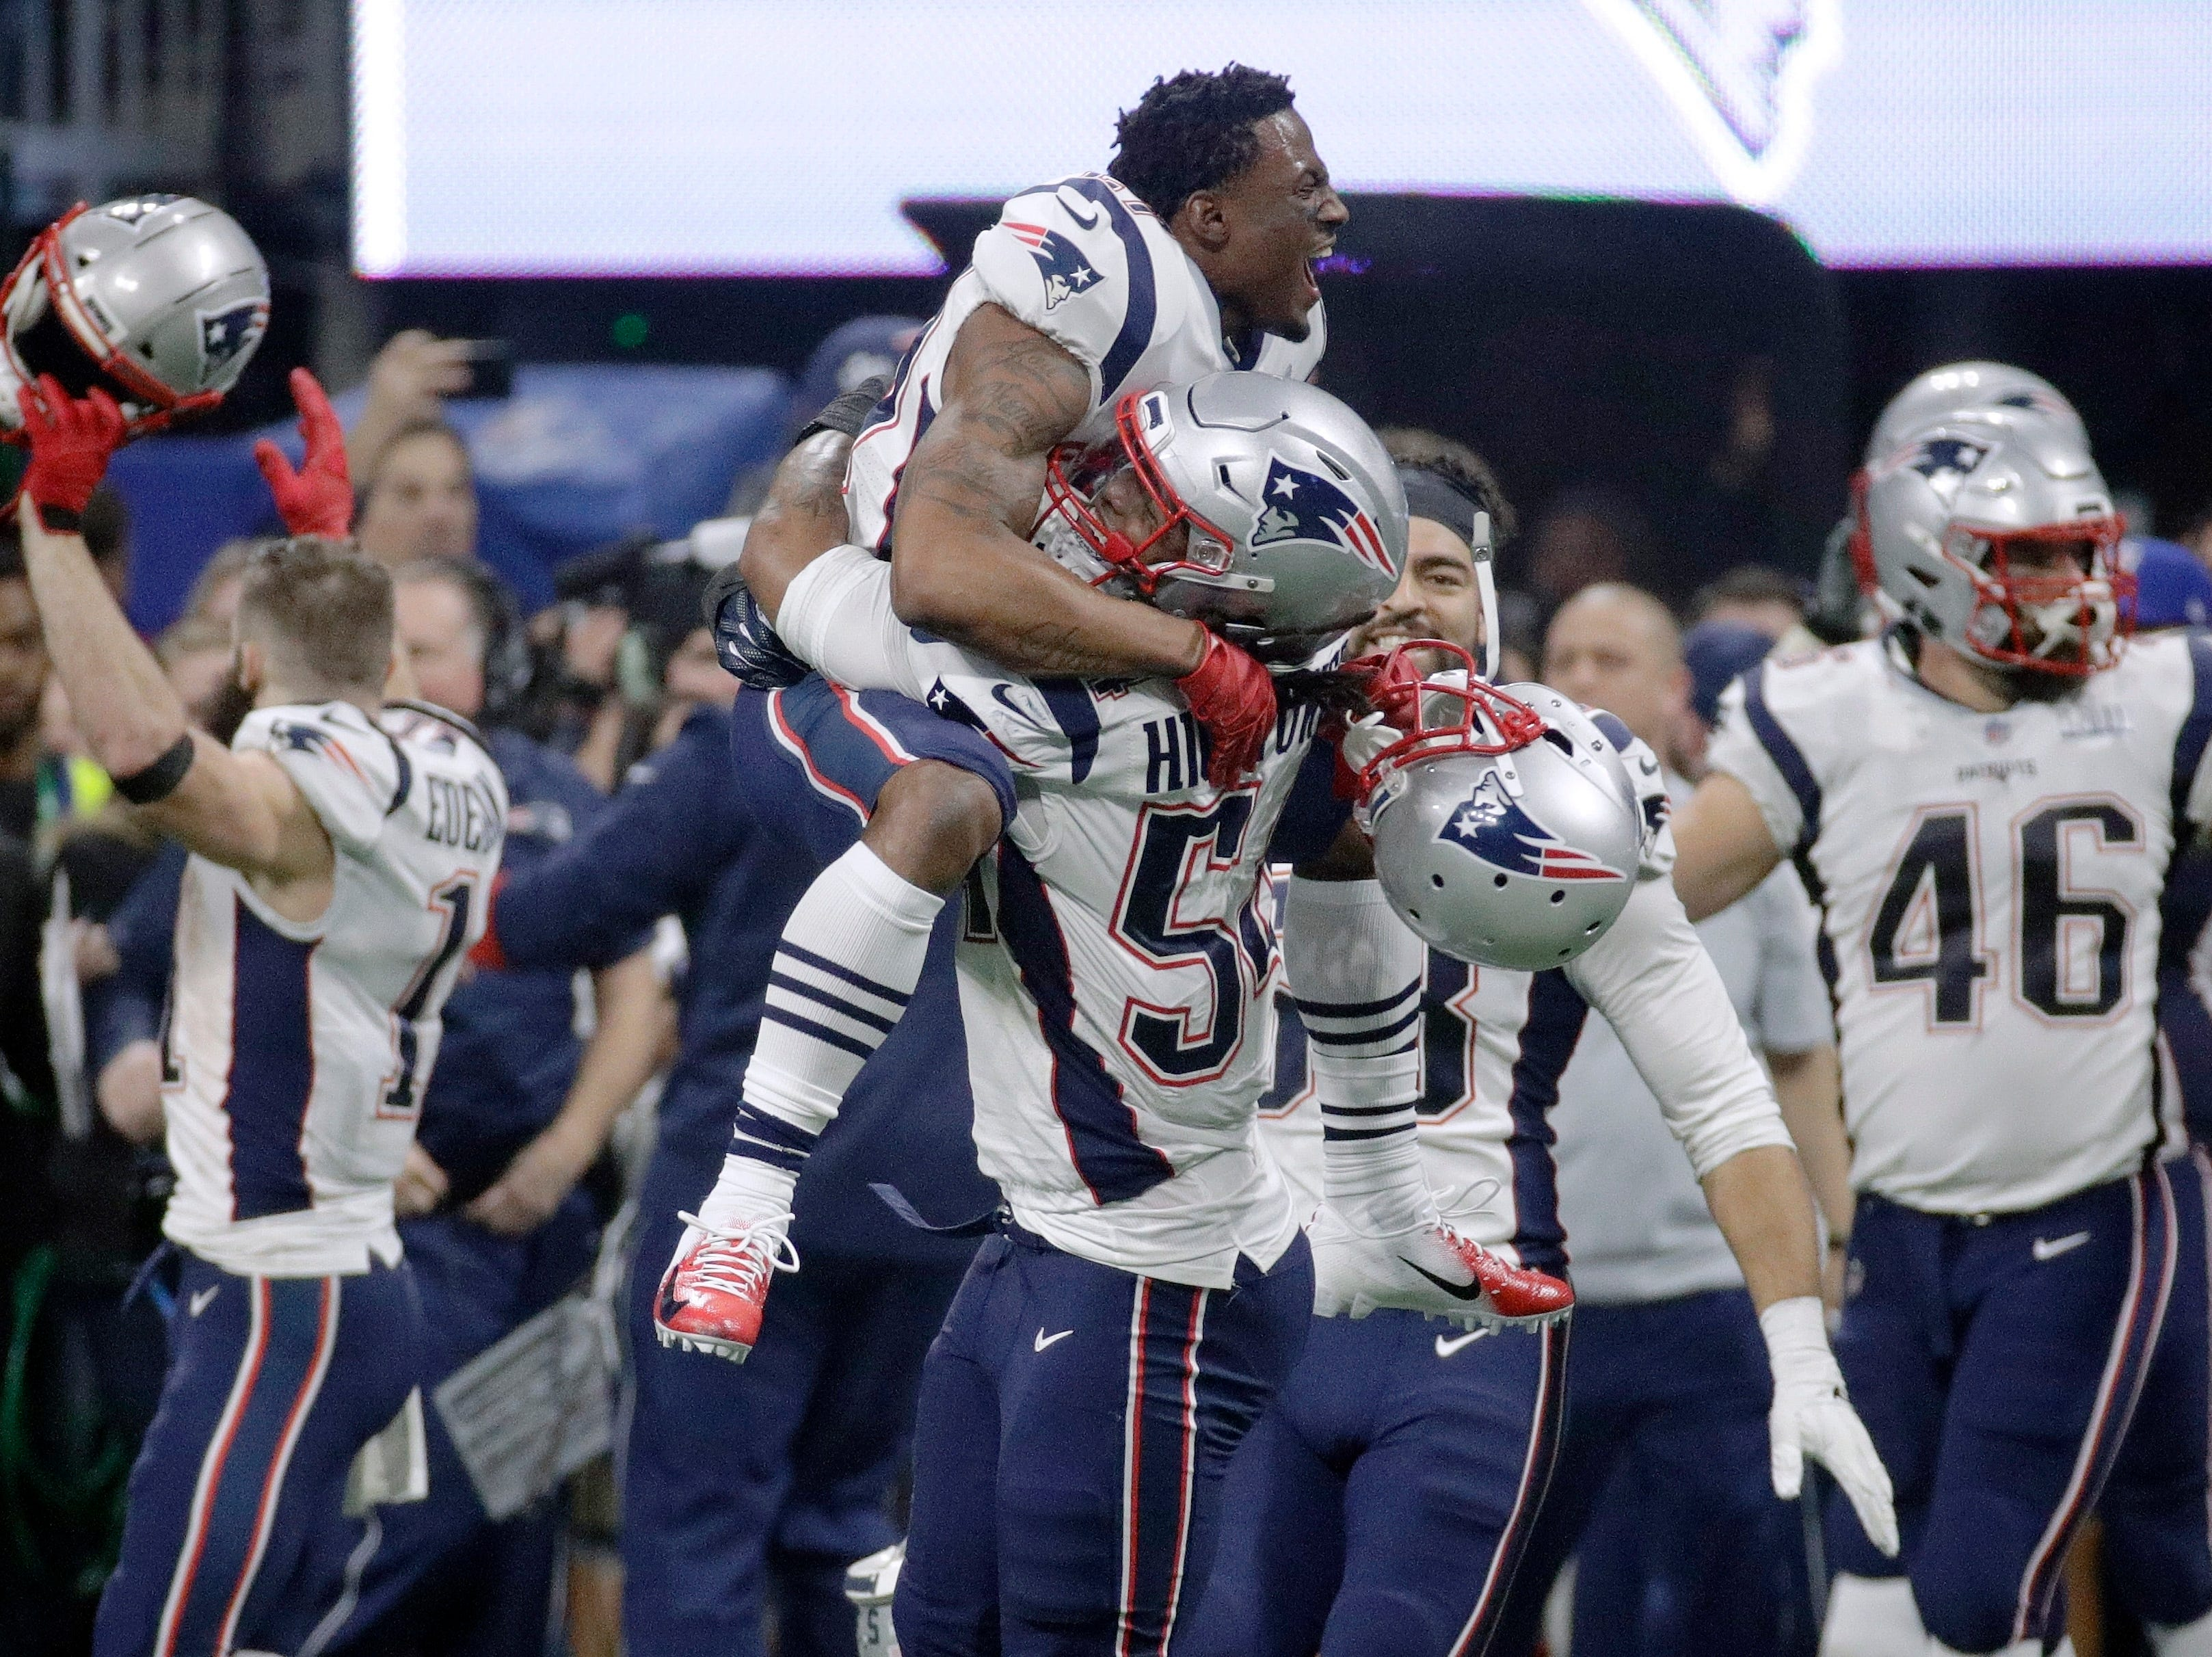 New England Patriots' Dont'a Hightower (54) gives a lift to a teammate as they celebrate winning the NFL Super Bowl 53 football game 13-3 over the Los Angeles Rams.